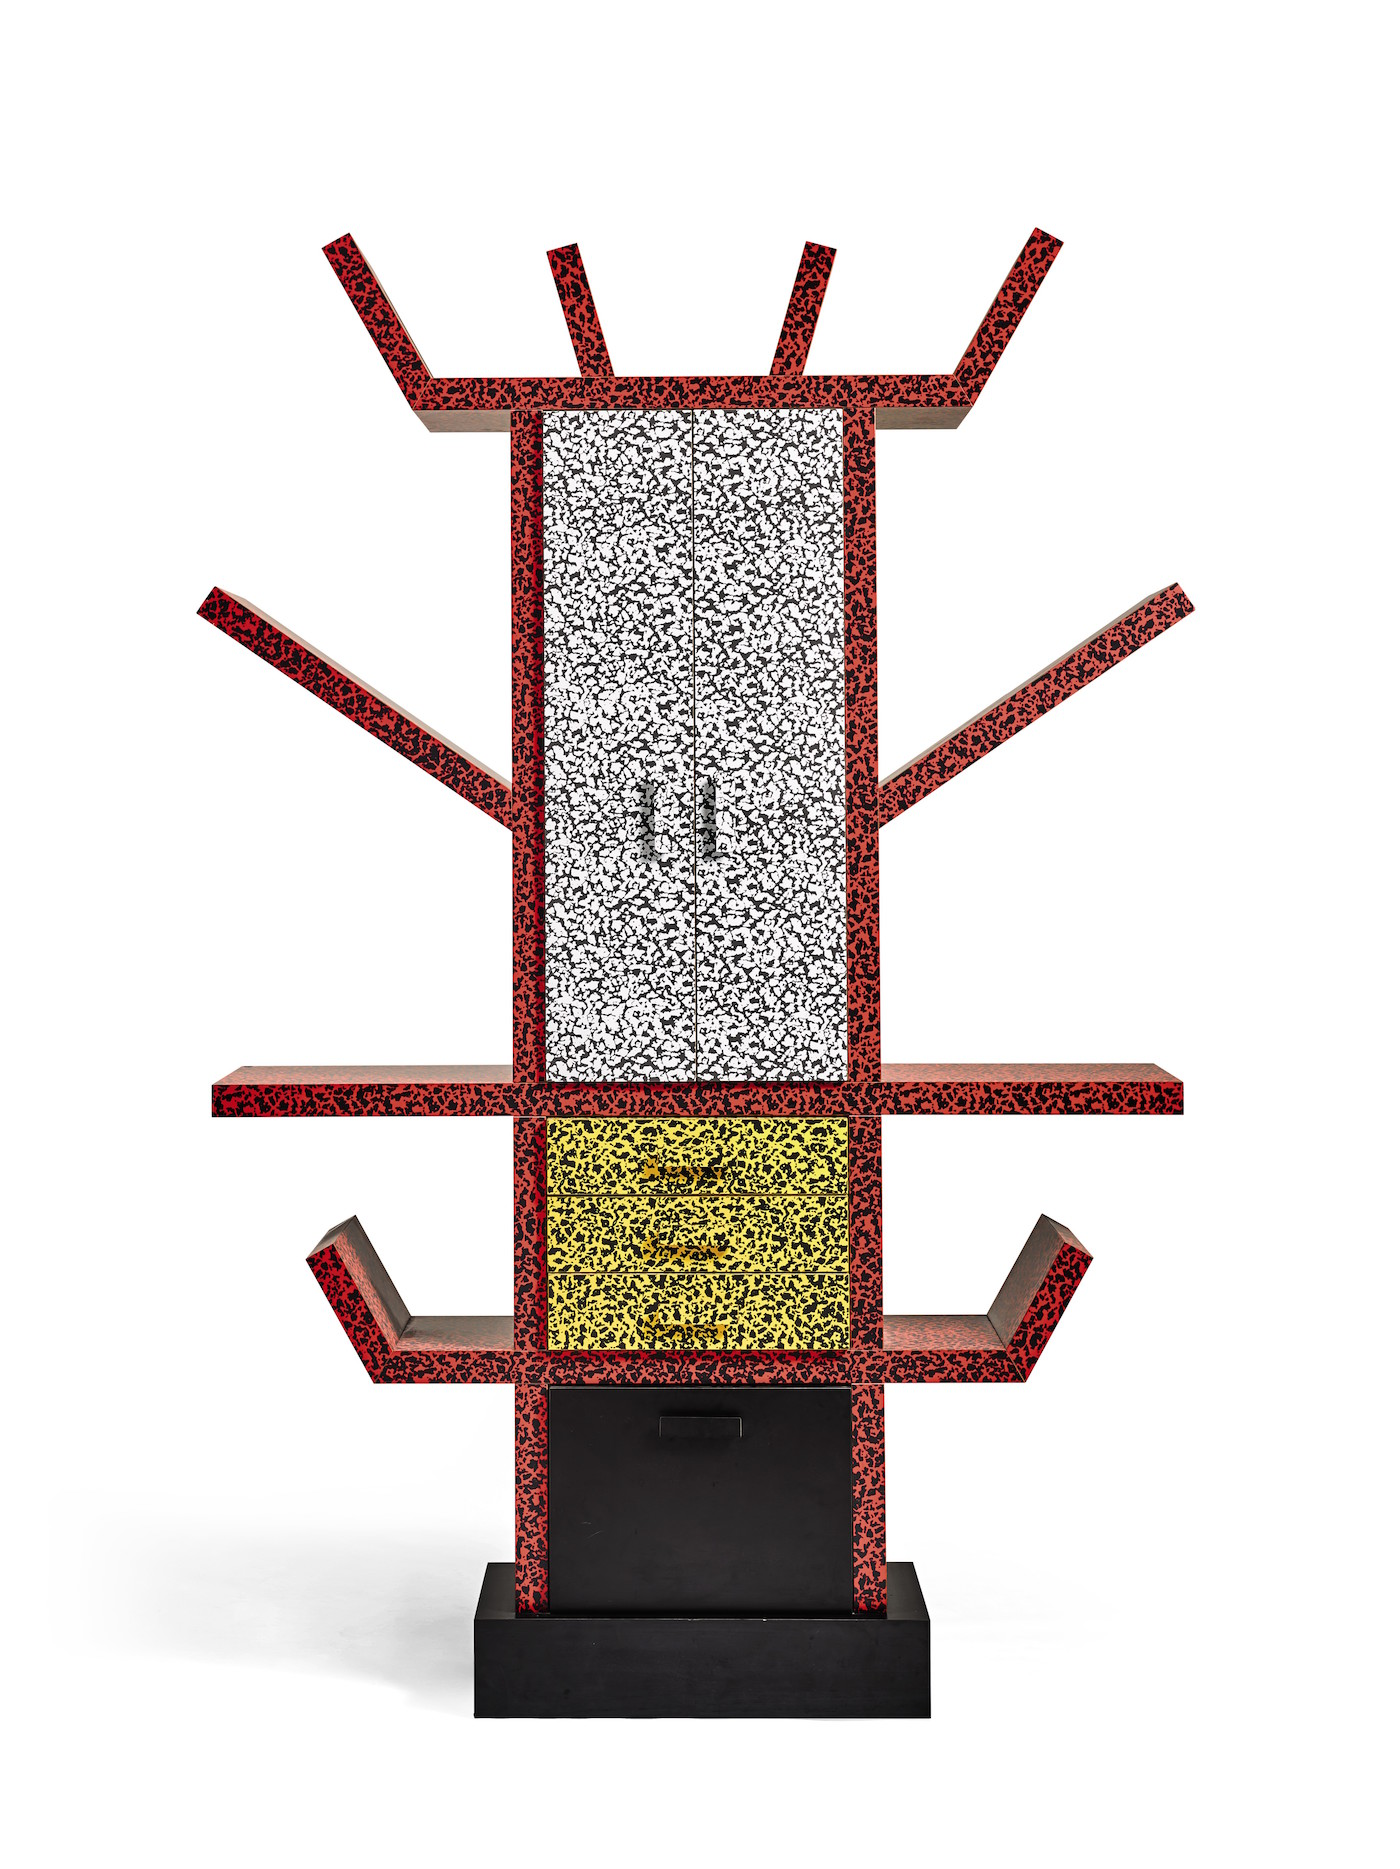 """Ettore Sottsass, """"'Casablanca' Sideboard"""" (1981), selling for £4,000-6,000 ($5,300-8000 USD) (click to enlarge)"""